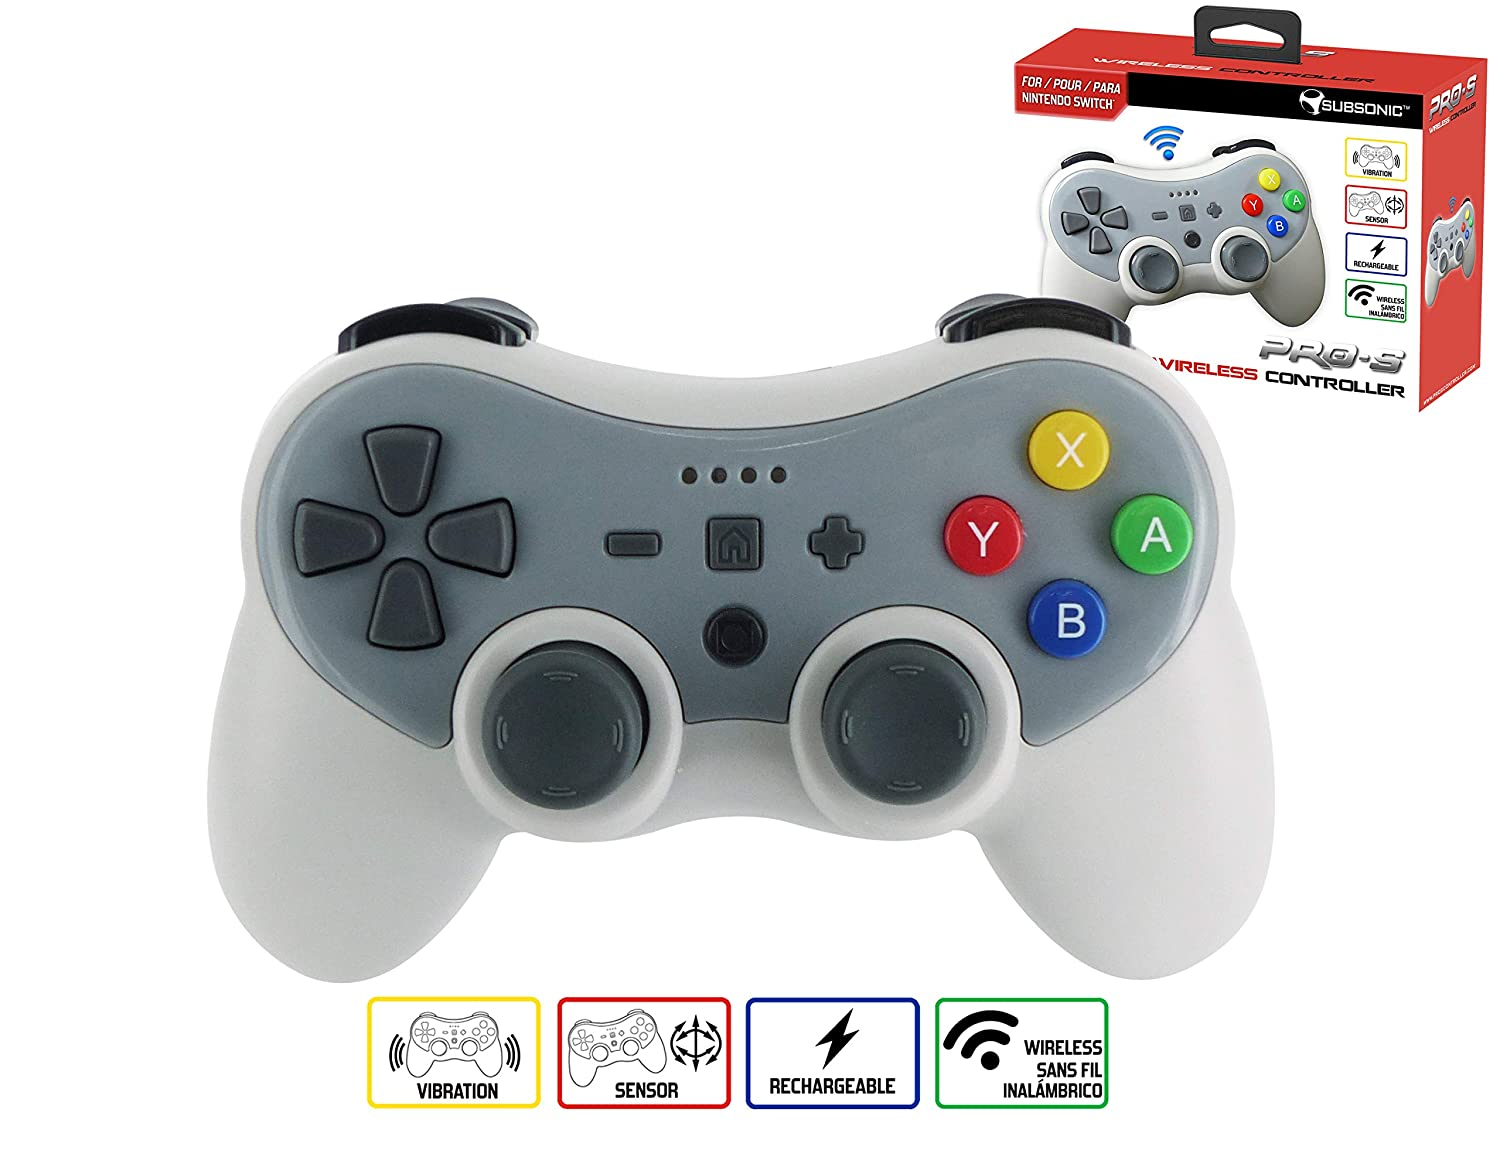 Subsonic - Wireless Controller for Nintendo Switch with 2 m